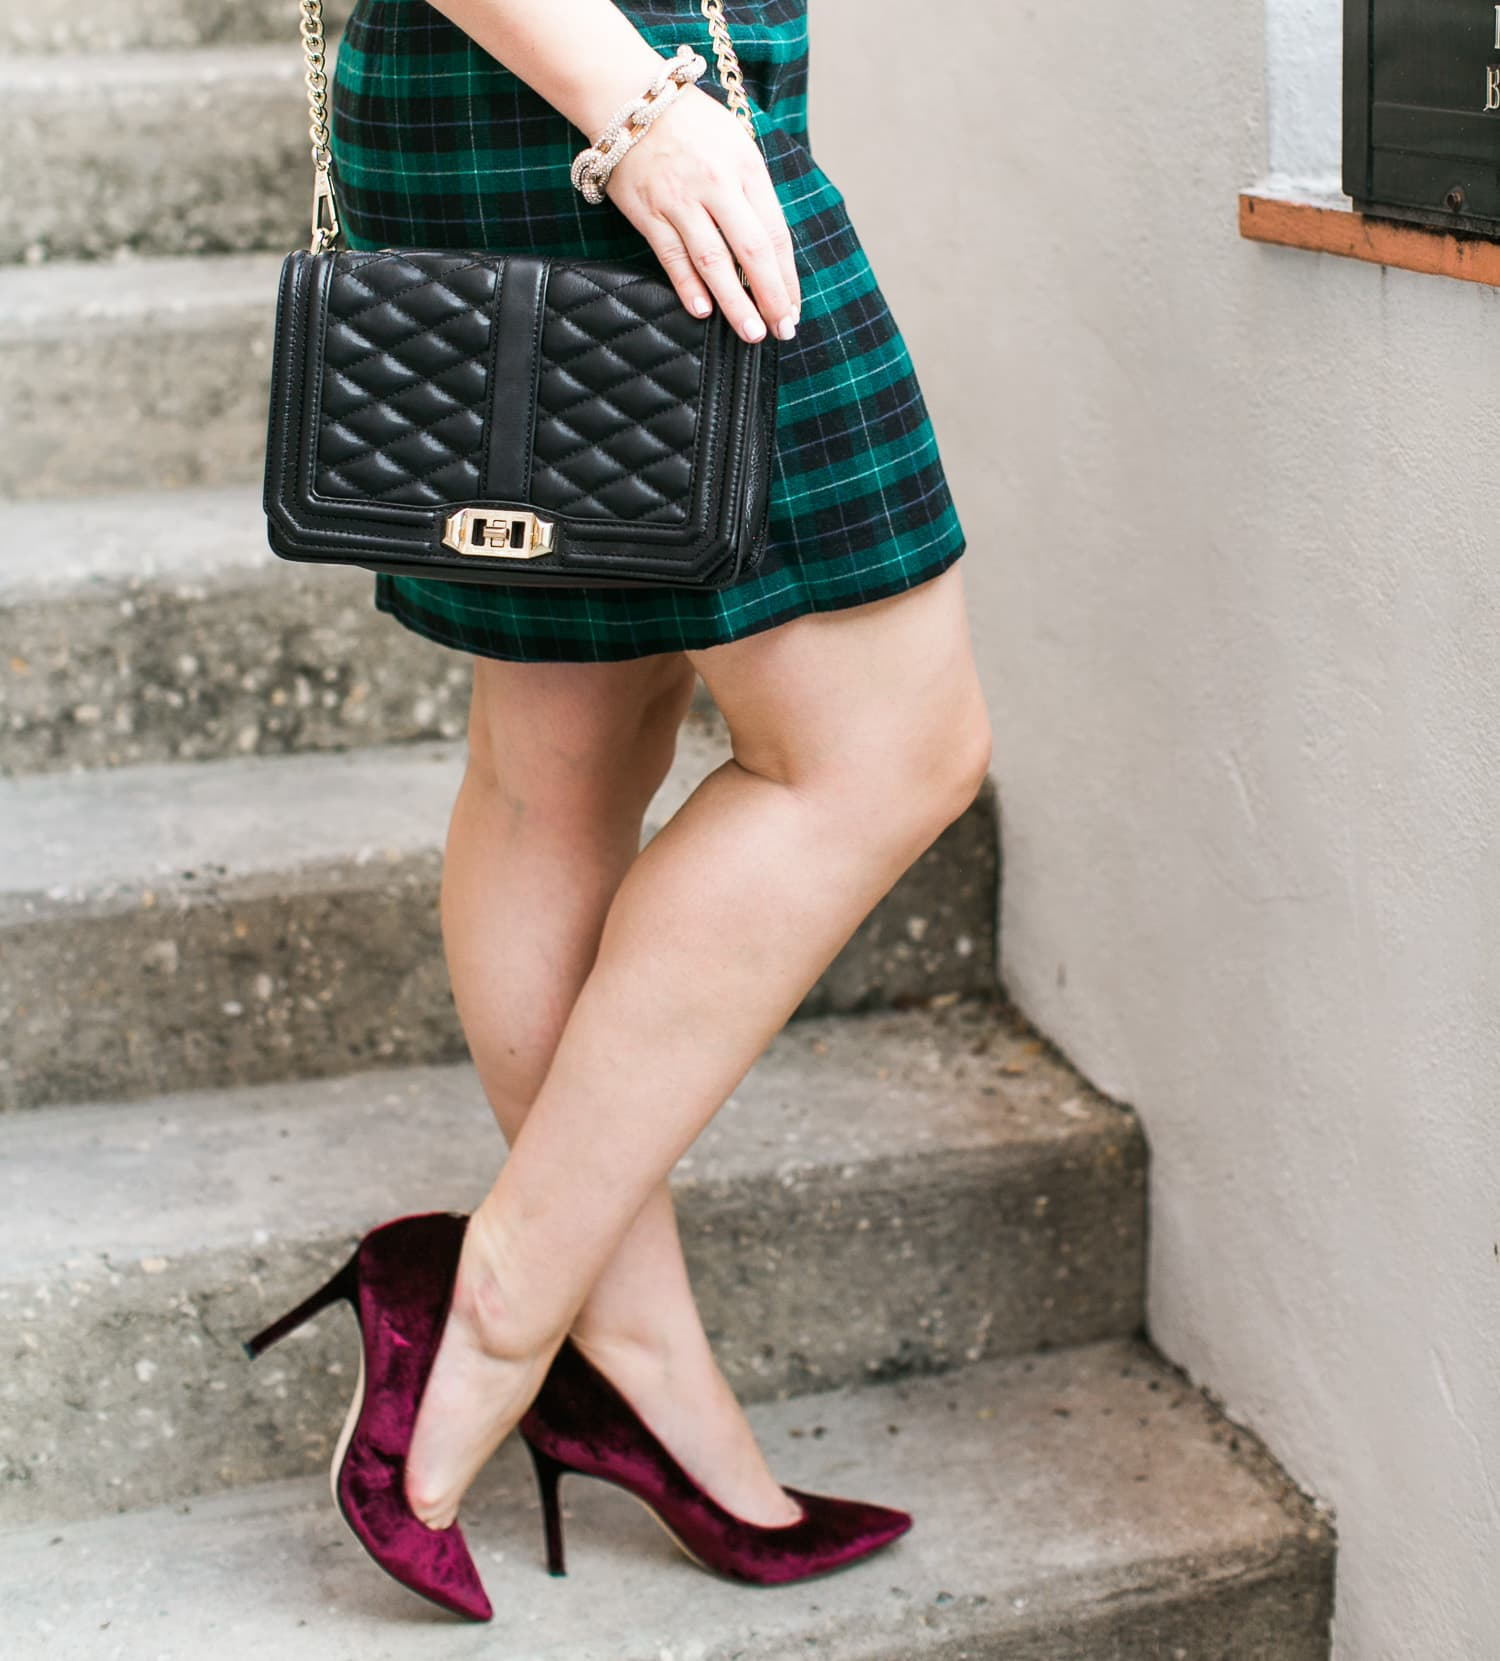 sam-edelman-burgundy-velvet-pumps-green-plaid-skirt-rebecca-minkoff-love-cross-bag-pave-link-bracelet-022